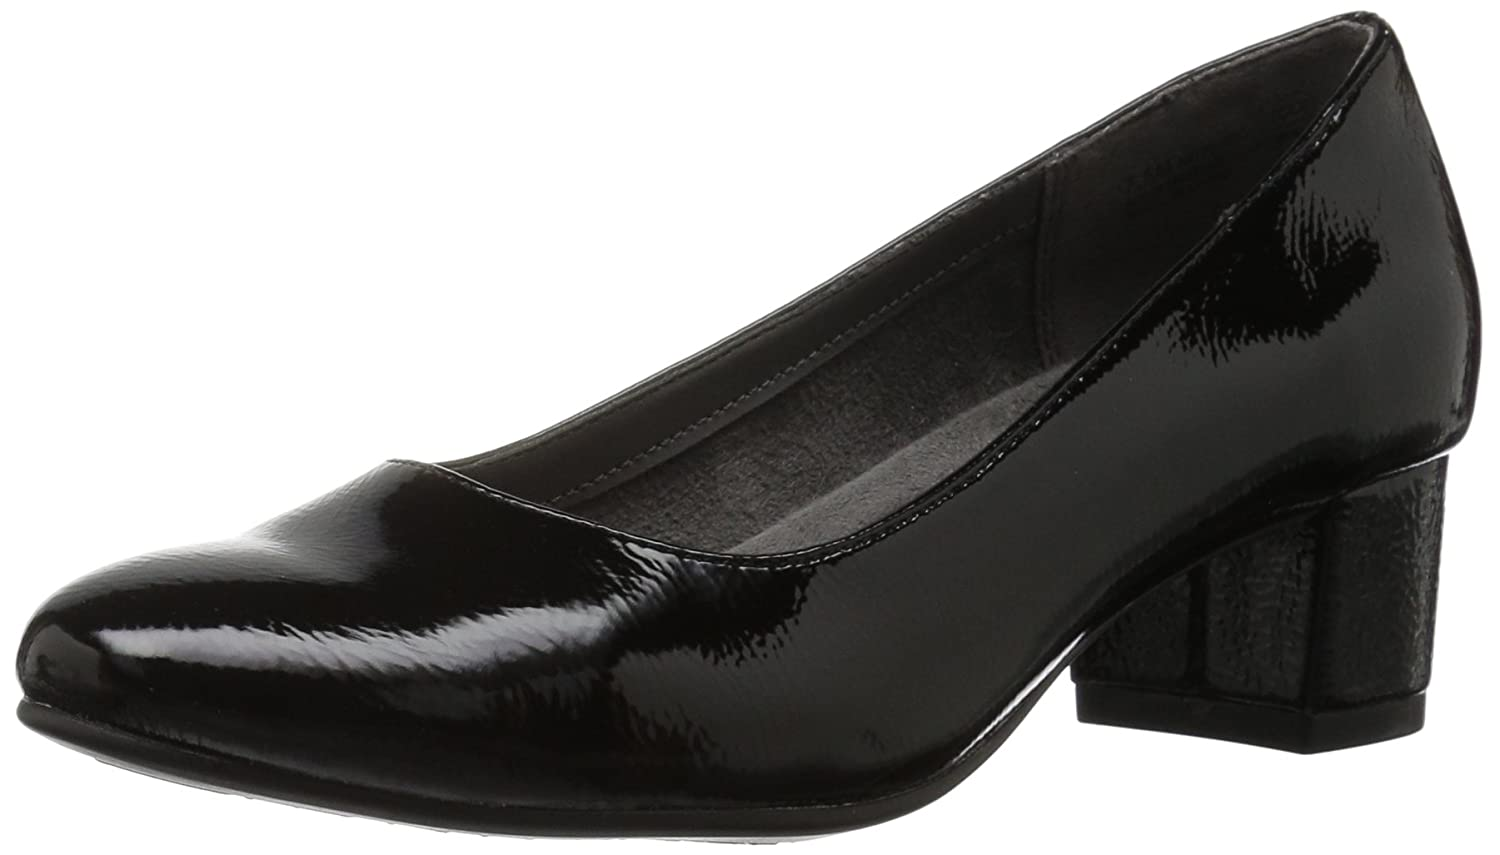 Aerosoles A2 by Women's Notepad Dress Pump B06Y3XGWFG 6.5 B(M) US|Black Patent